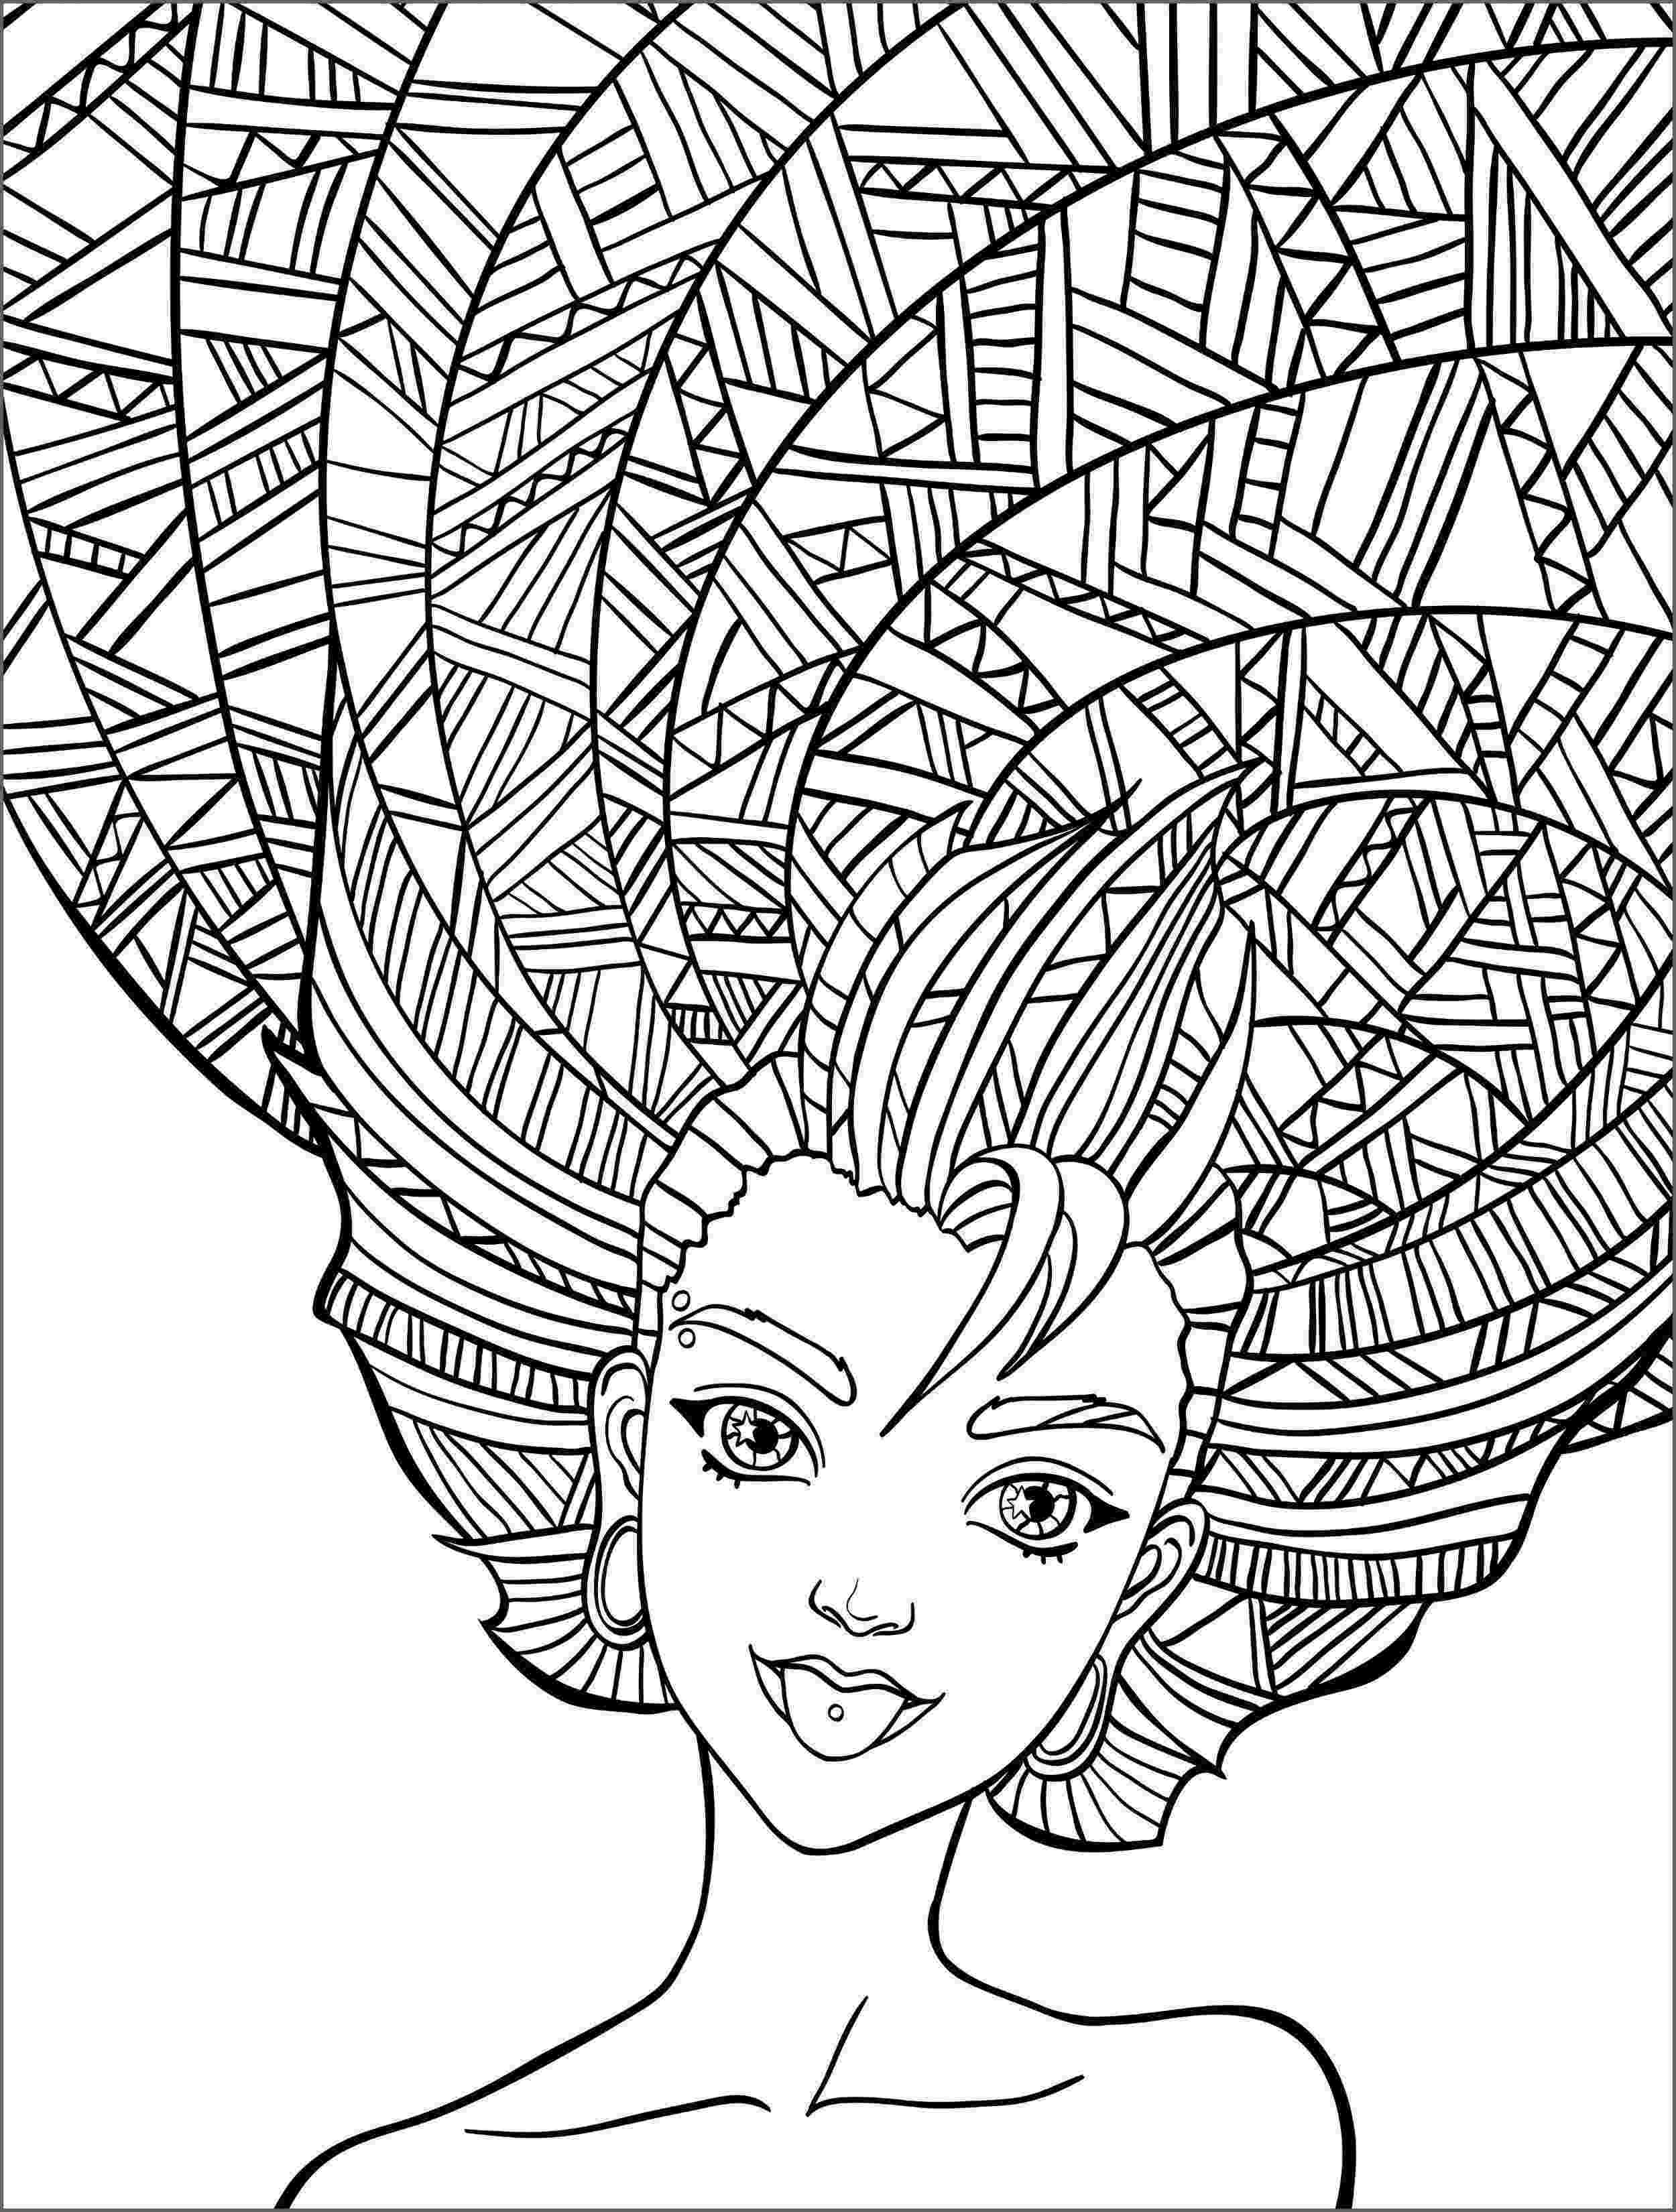 coloring pages for adults free online get this free printable butterfly coloring pages for coloring online pages adults free for